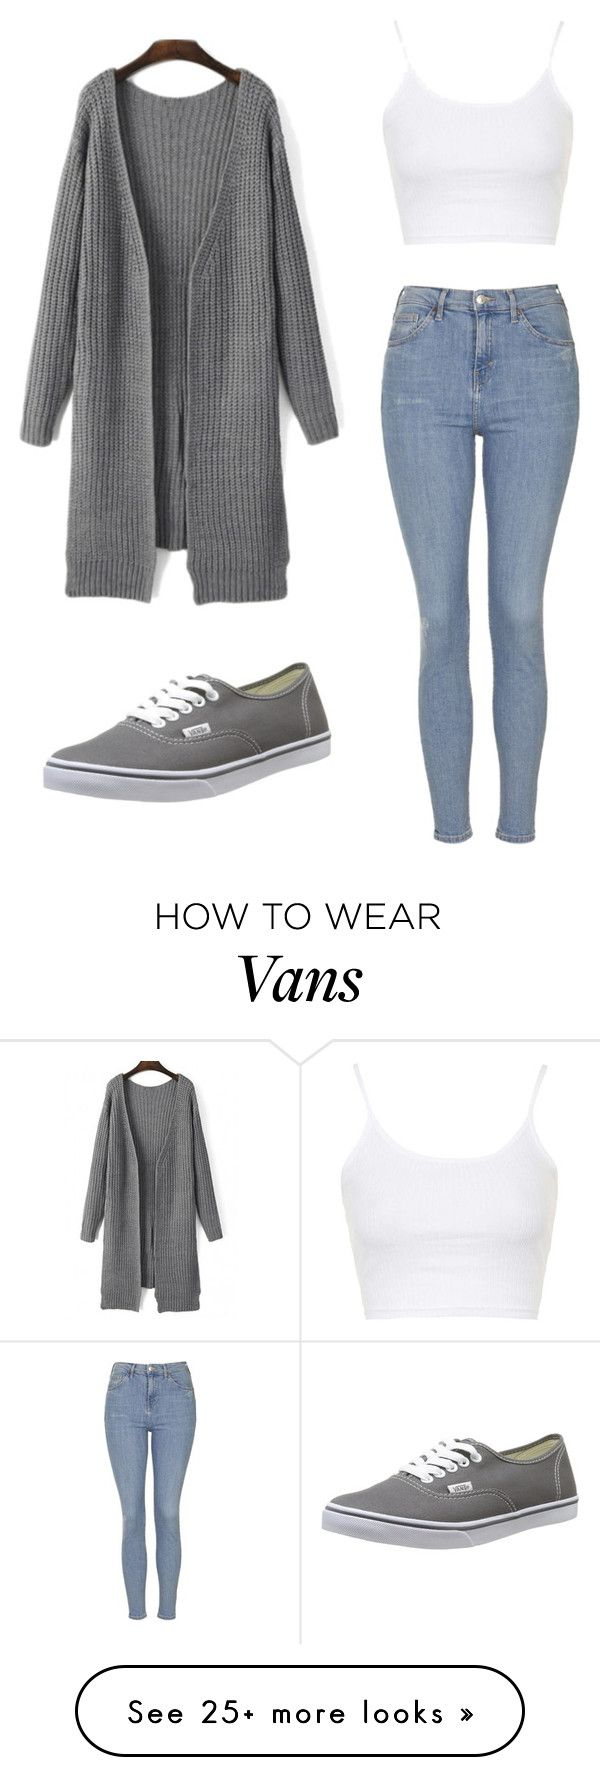 """:3"" by deima-835 on Polyvore featuring Topshop and Vans"